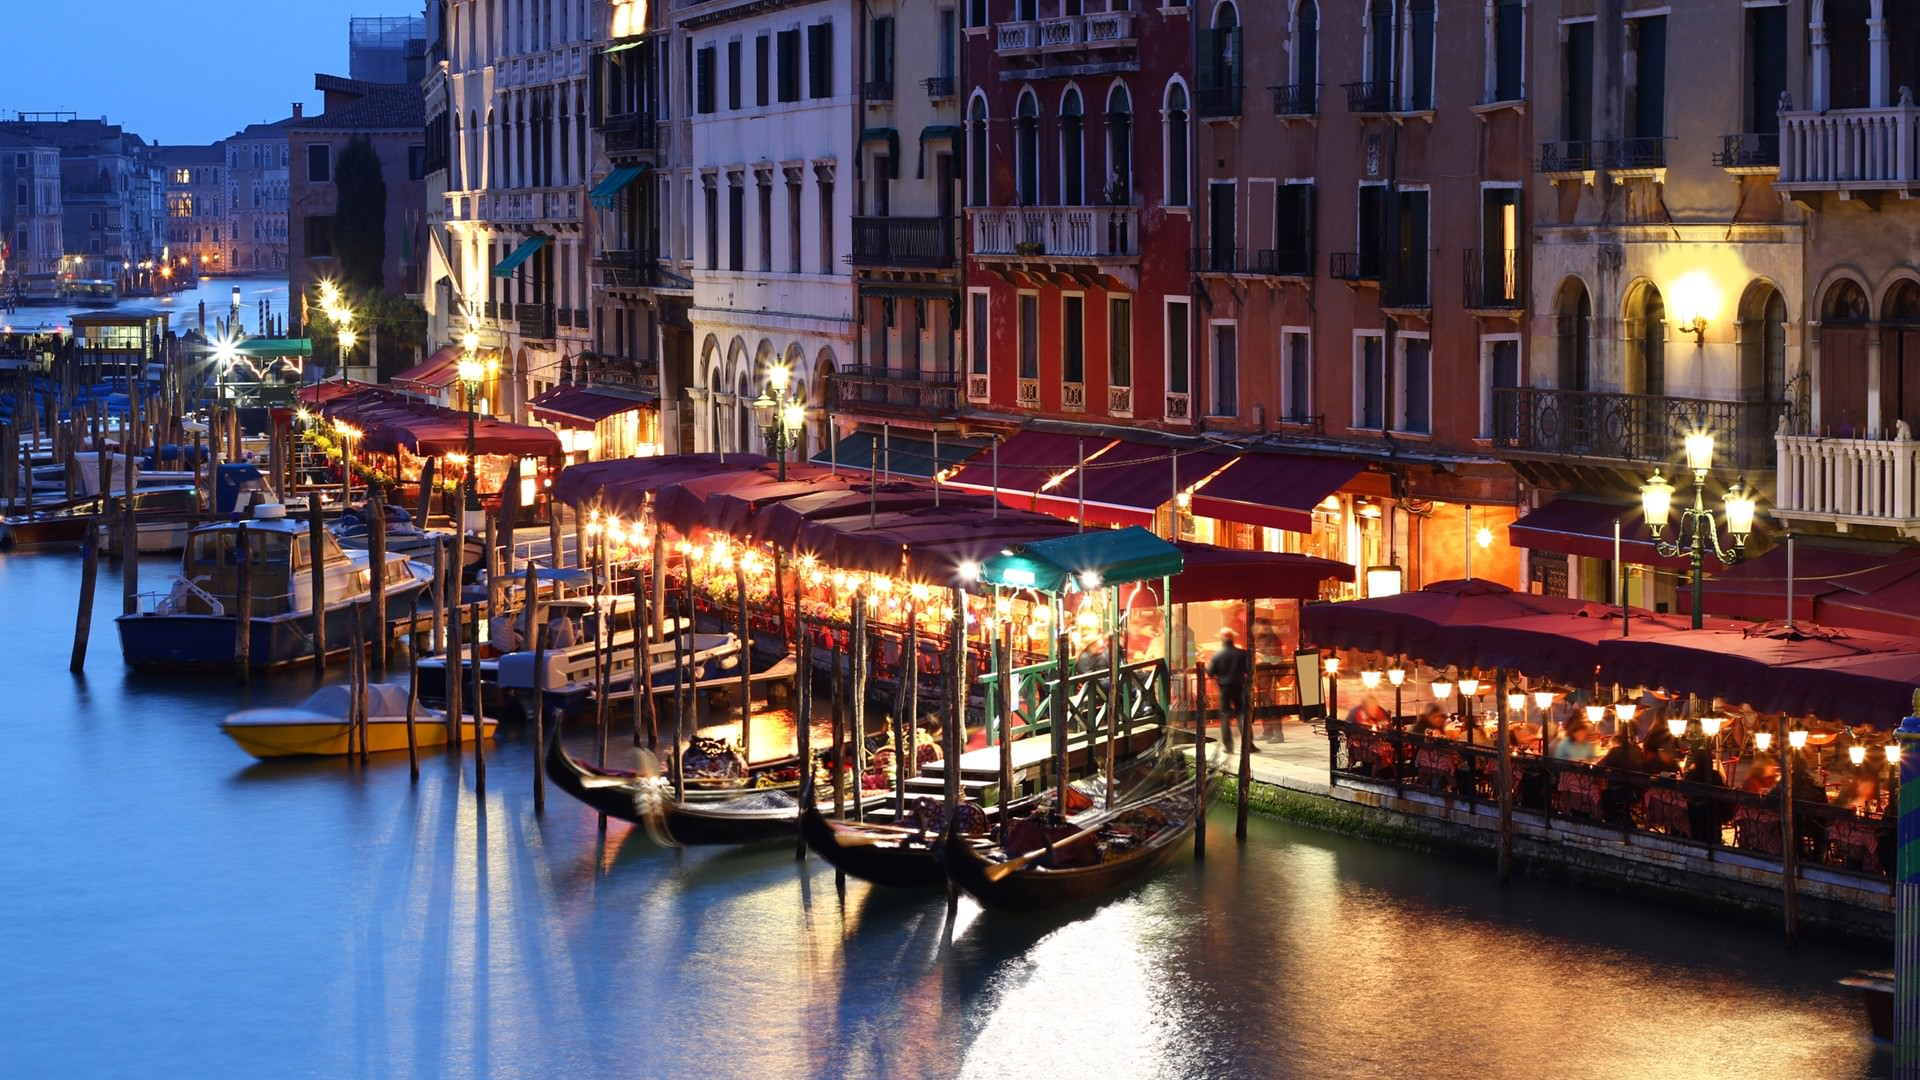 Beautiful Wallpaper With Quotes For Facebook Venice Wallpaper Collection